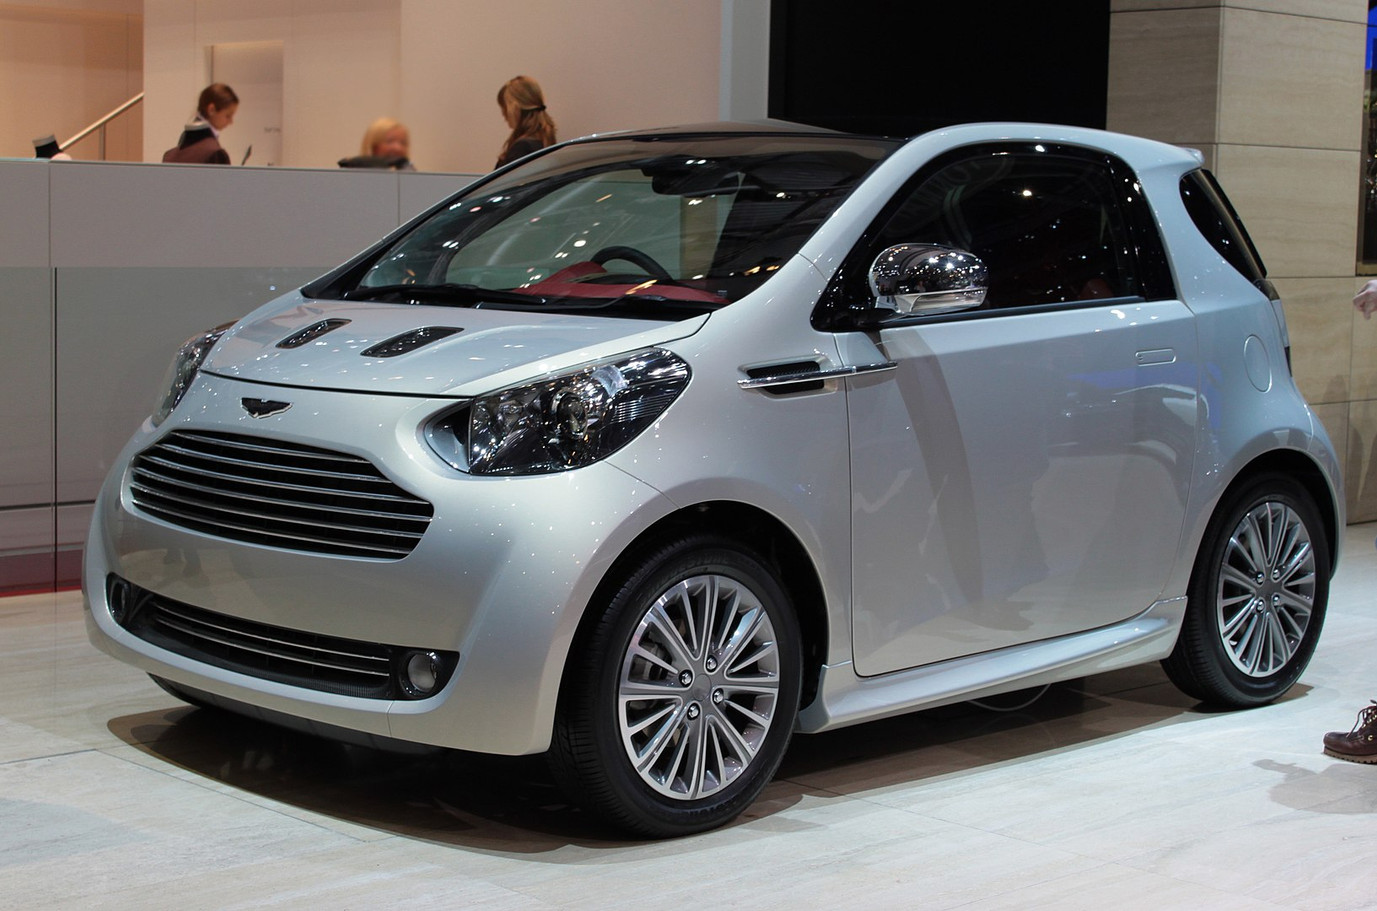 Aston Martin Cygnet at the 2010 Geneva Motor Show